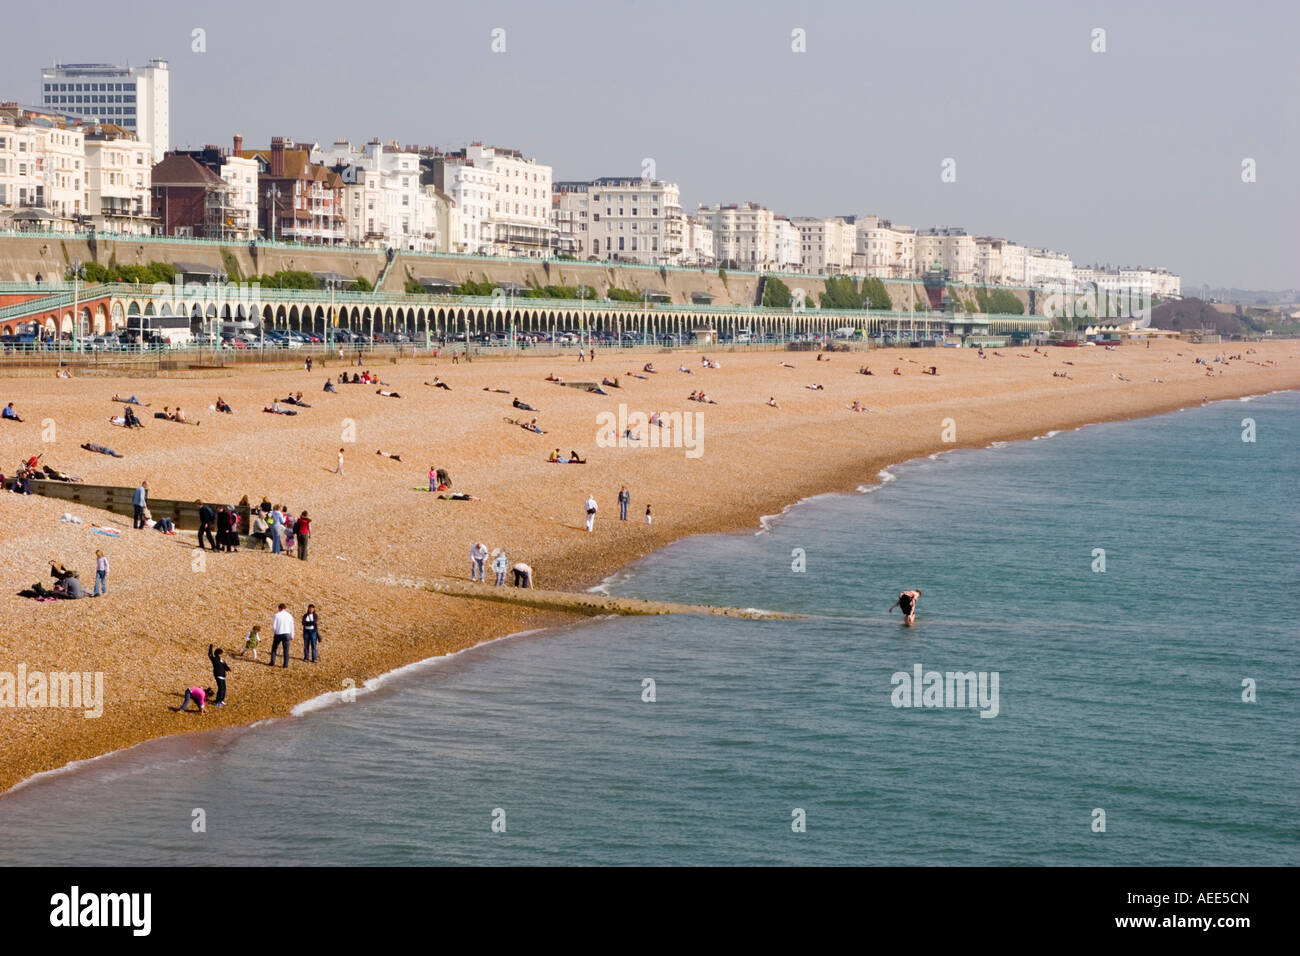 A busy and crowded Brighton beach and sea front on an unseasonably warm day in April Stock Photo